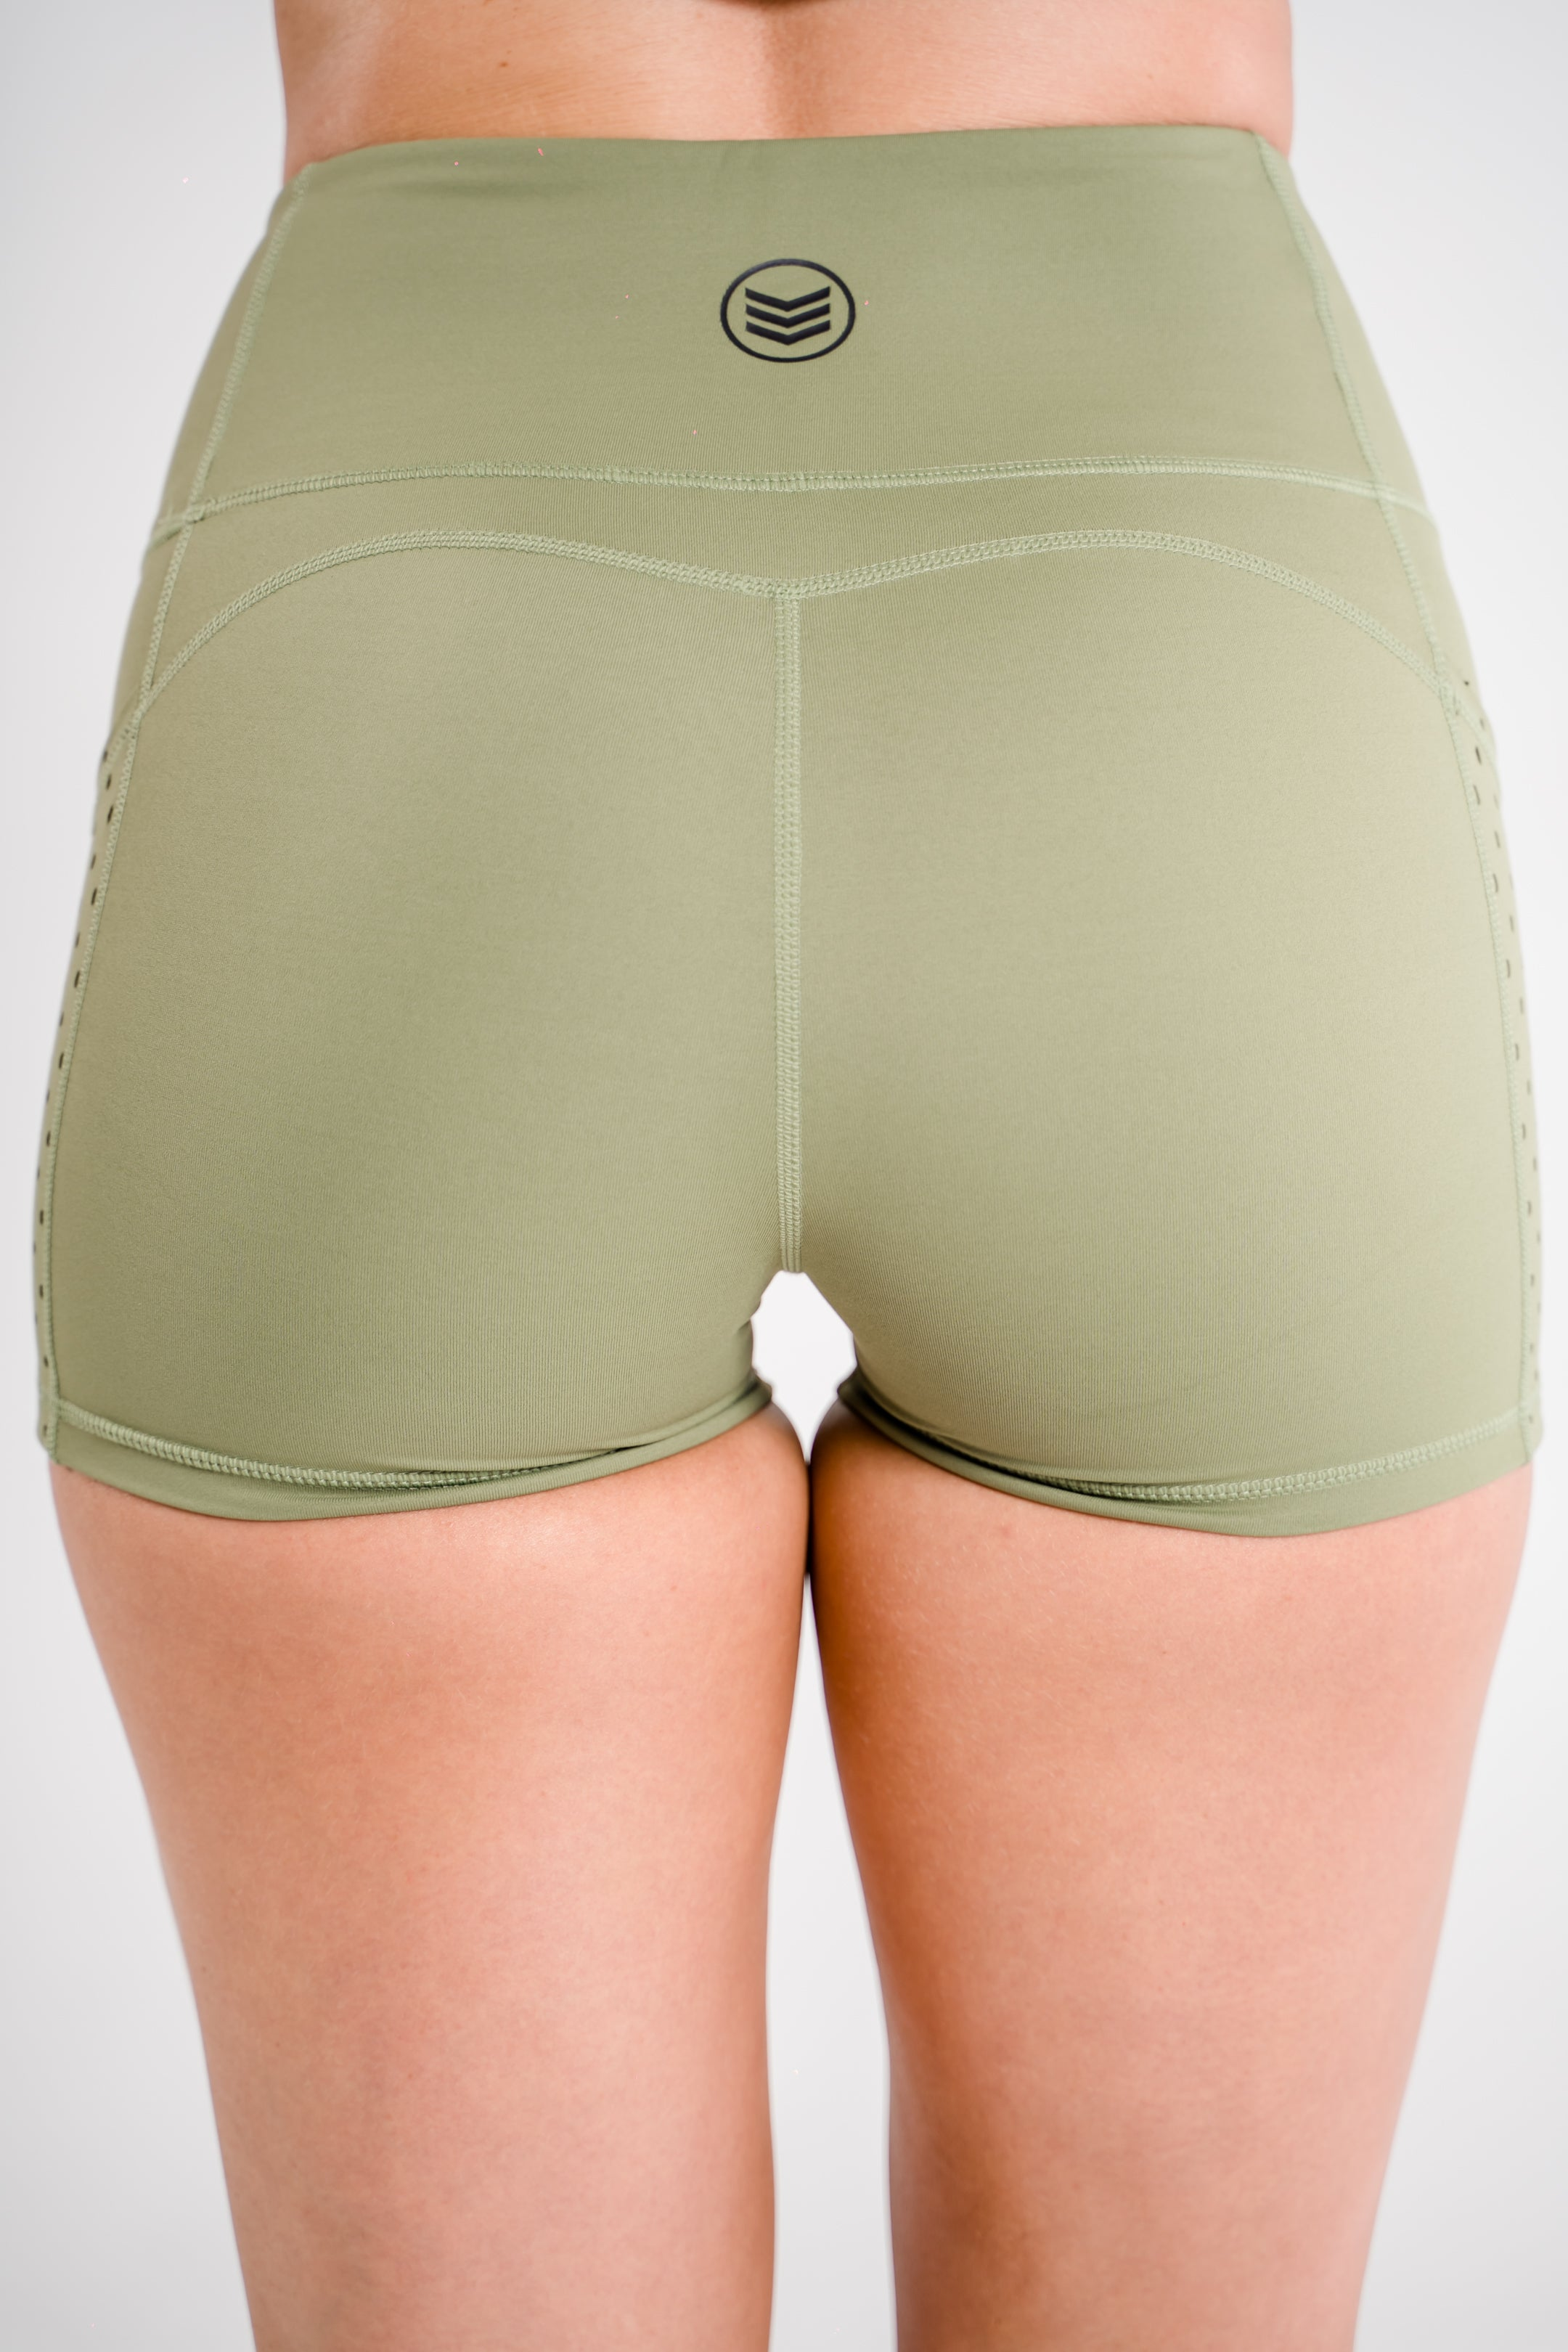 Ladies-OG-Training-Shorts-Khaki-Green-Back-Shredded-Warfare